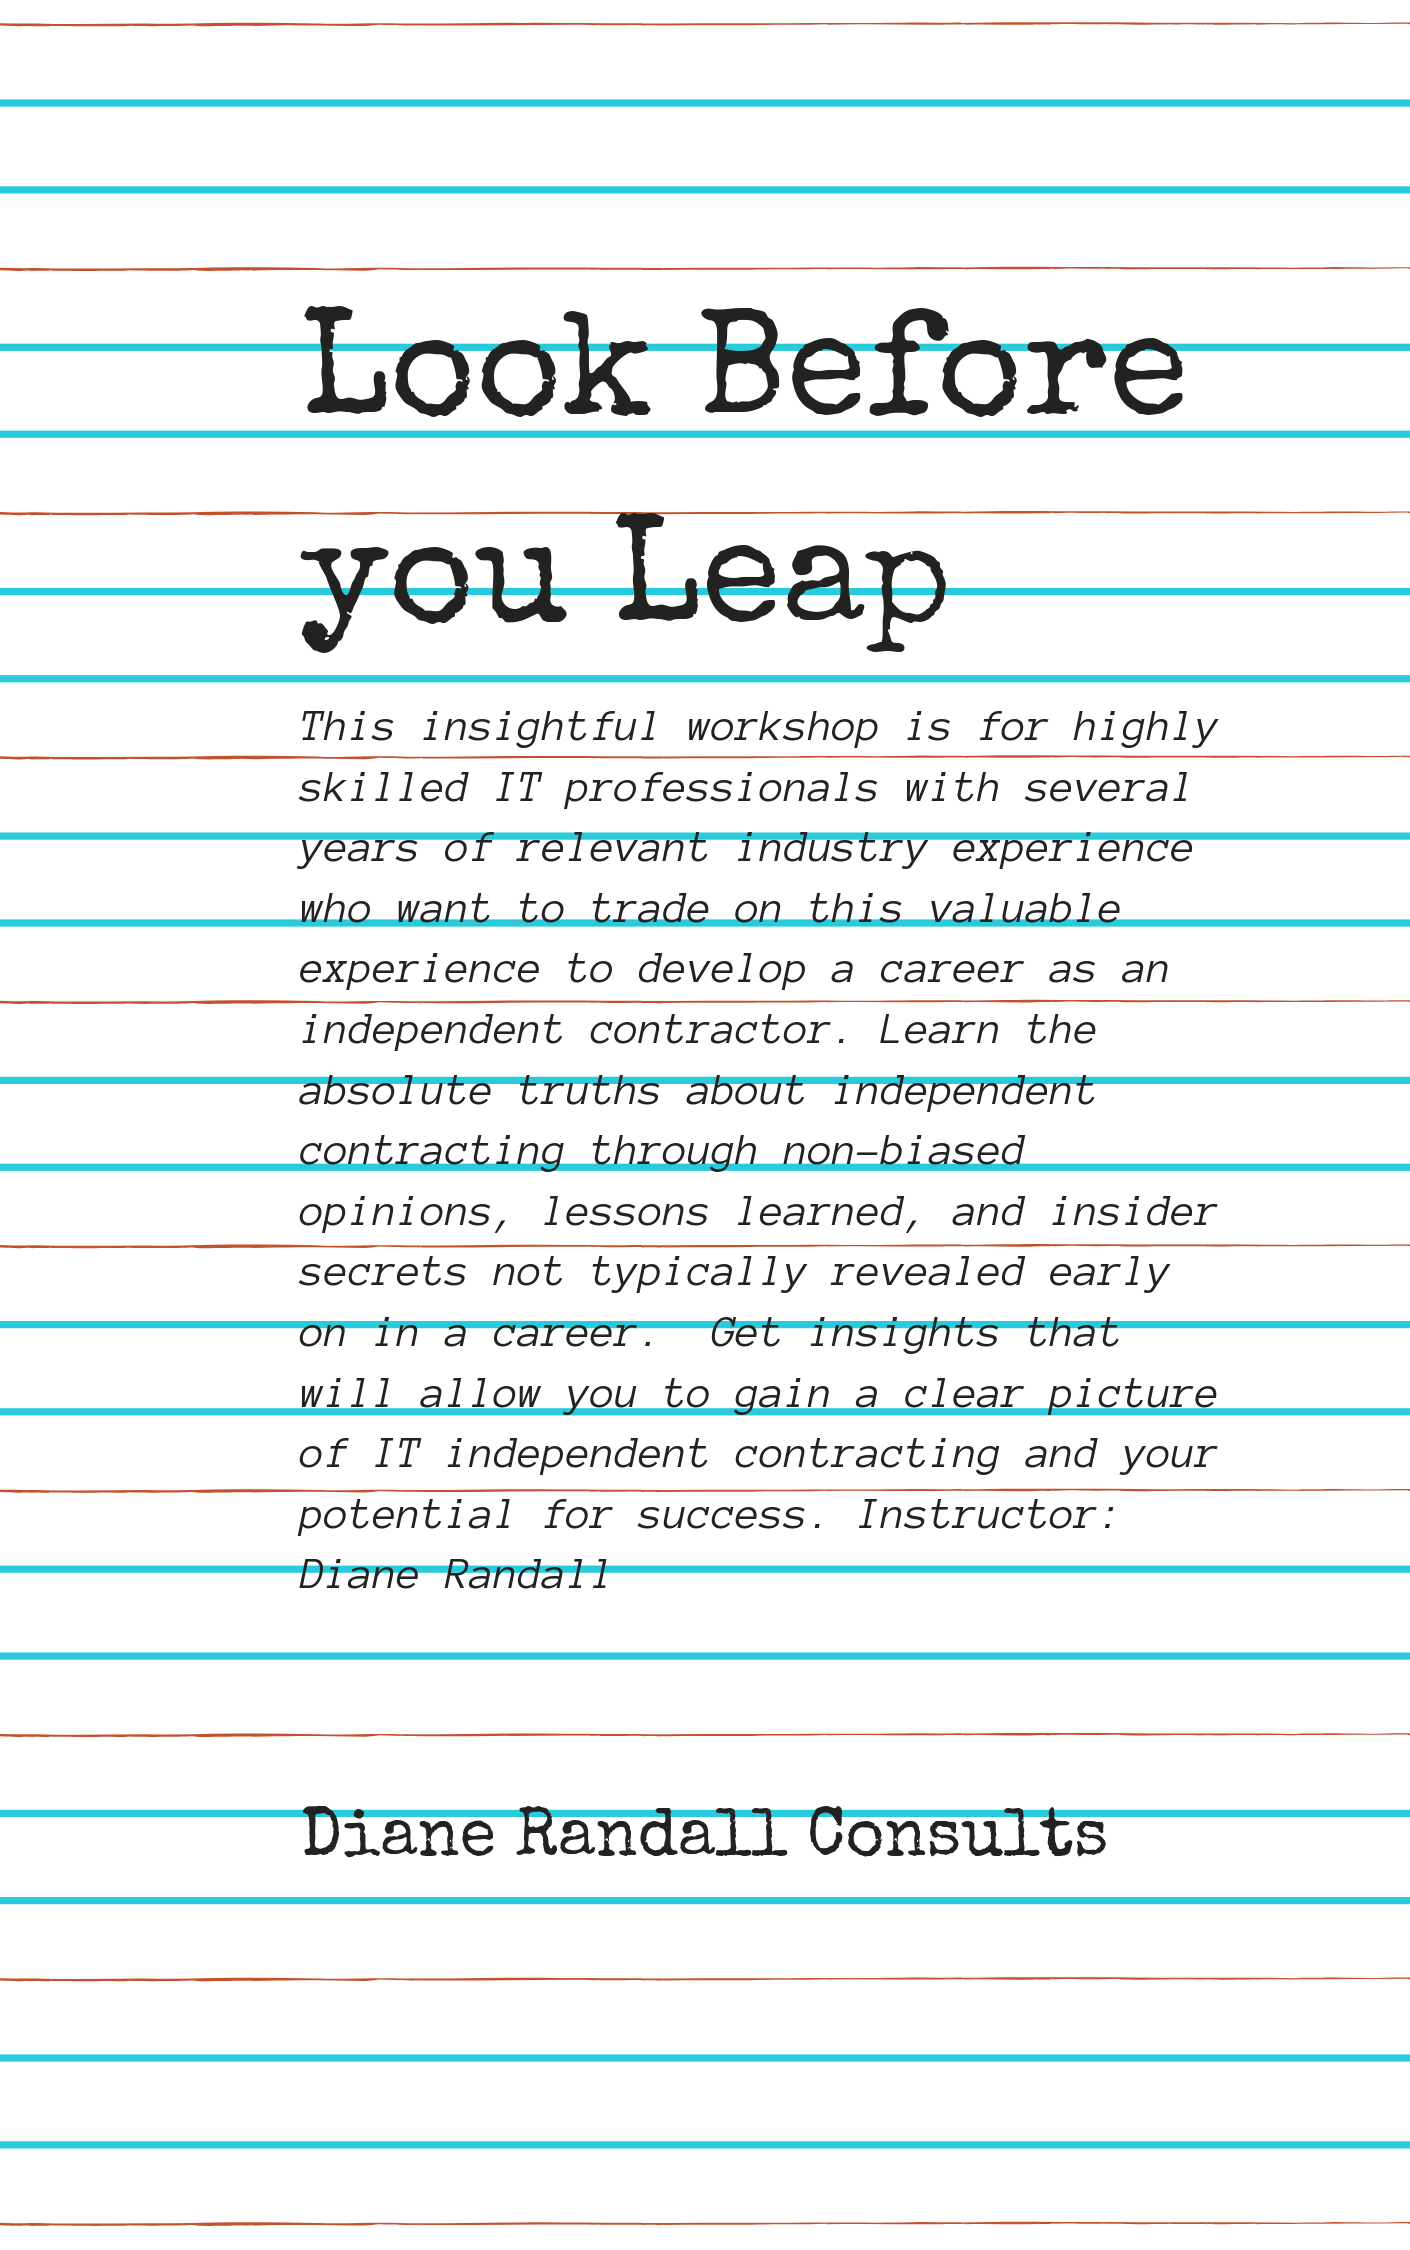 Look Before you Leap (2)